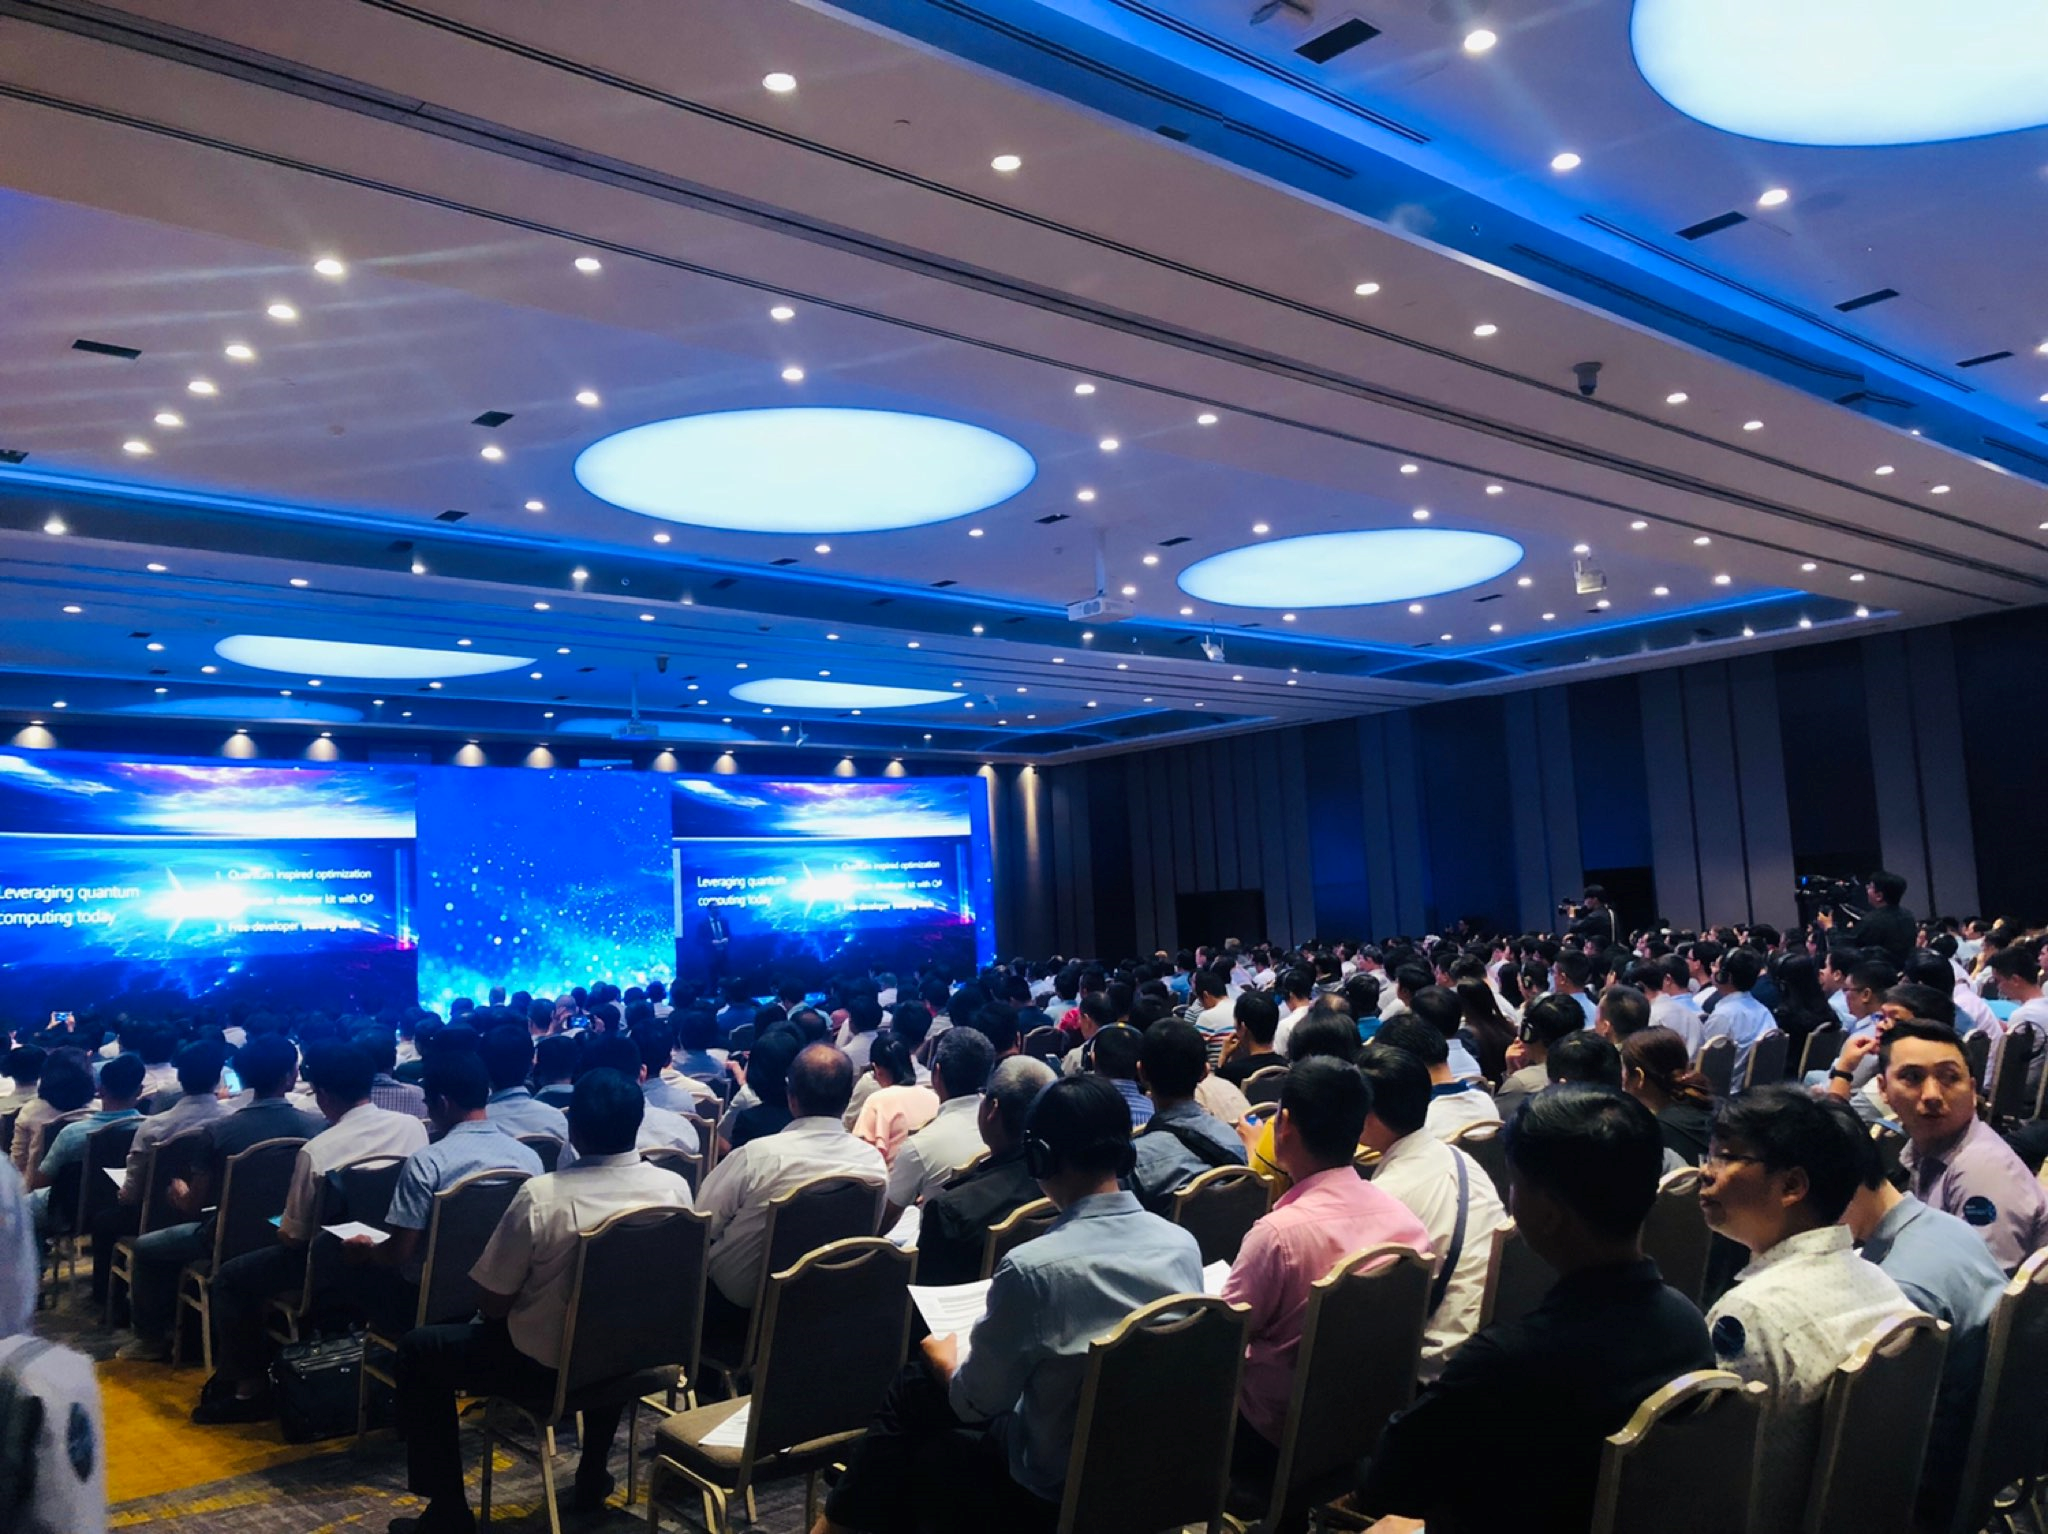 Innovation Summit 2019 is an IT major event which has attracted the attendance of over 1000 customers from various industries